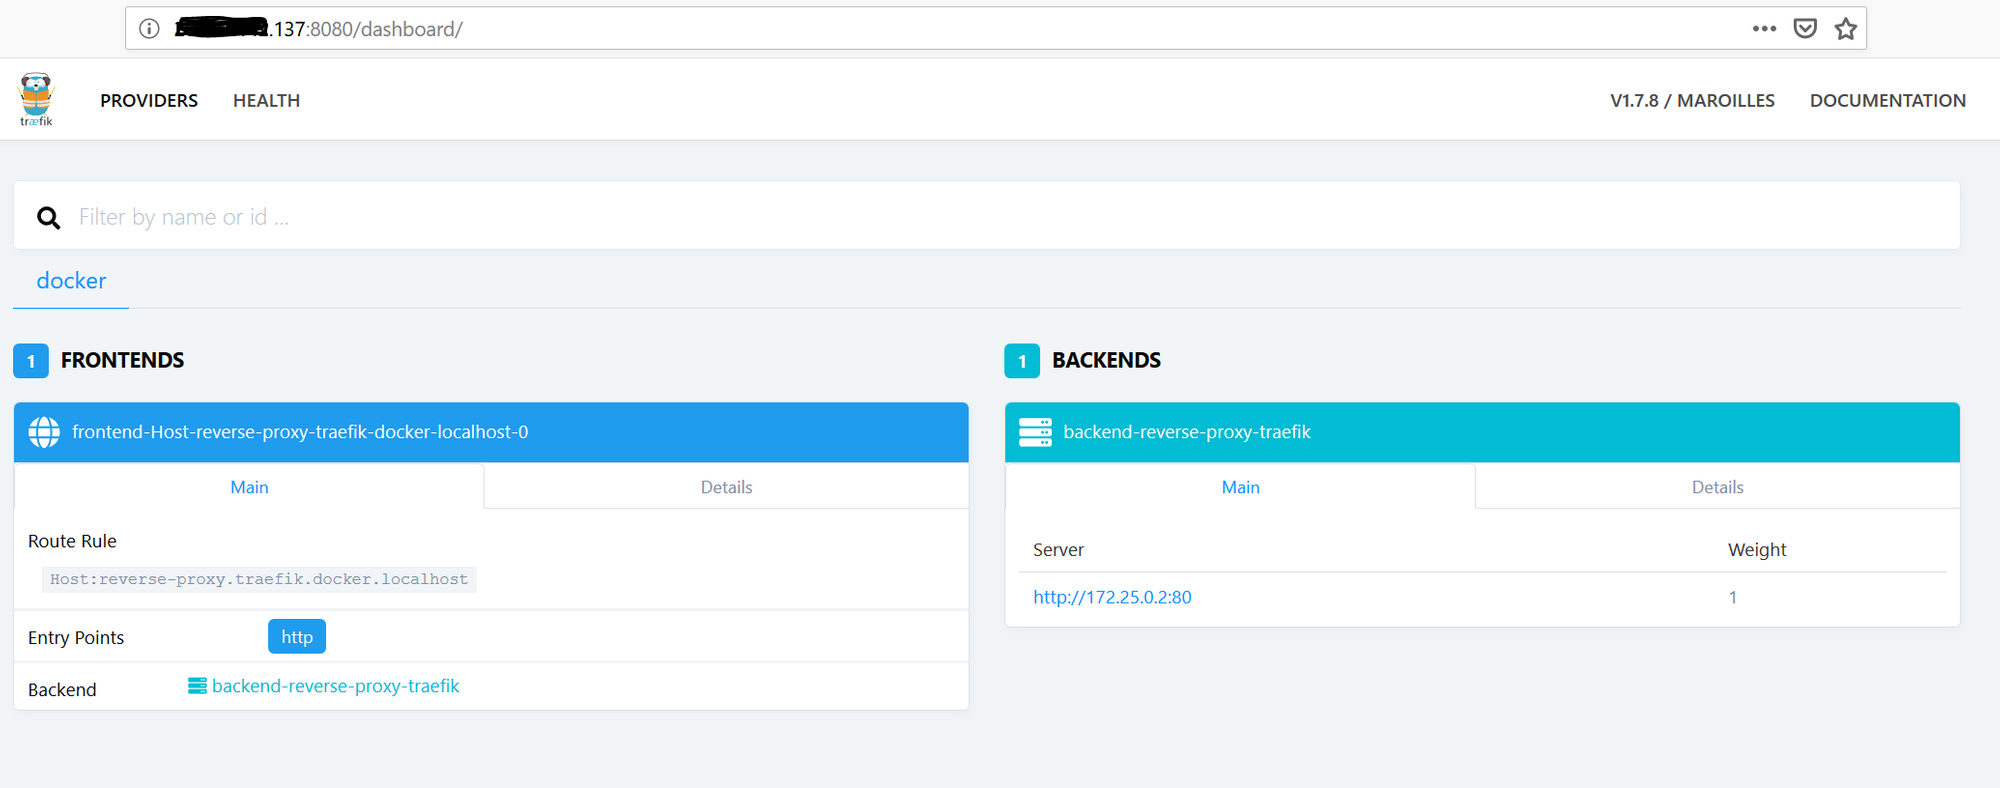 Getting started with Traefik as an alternative and easy to